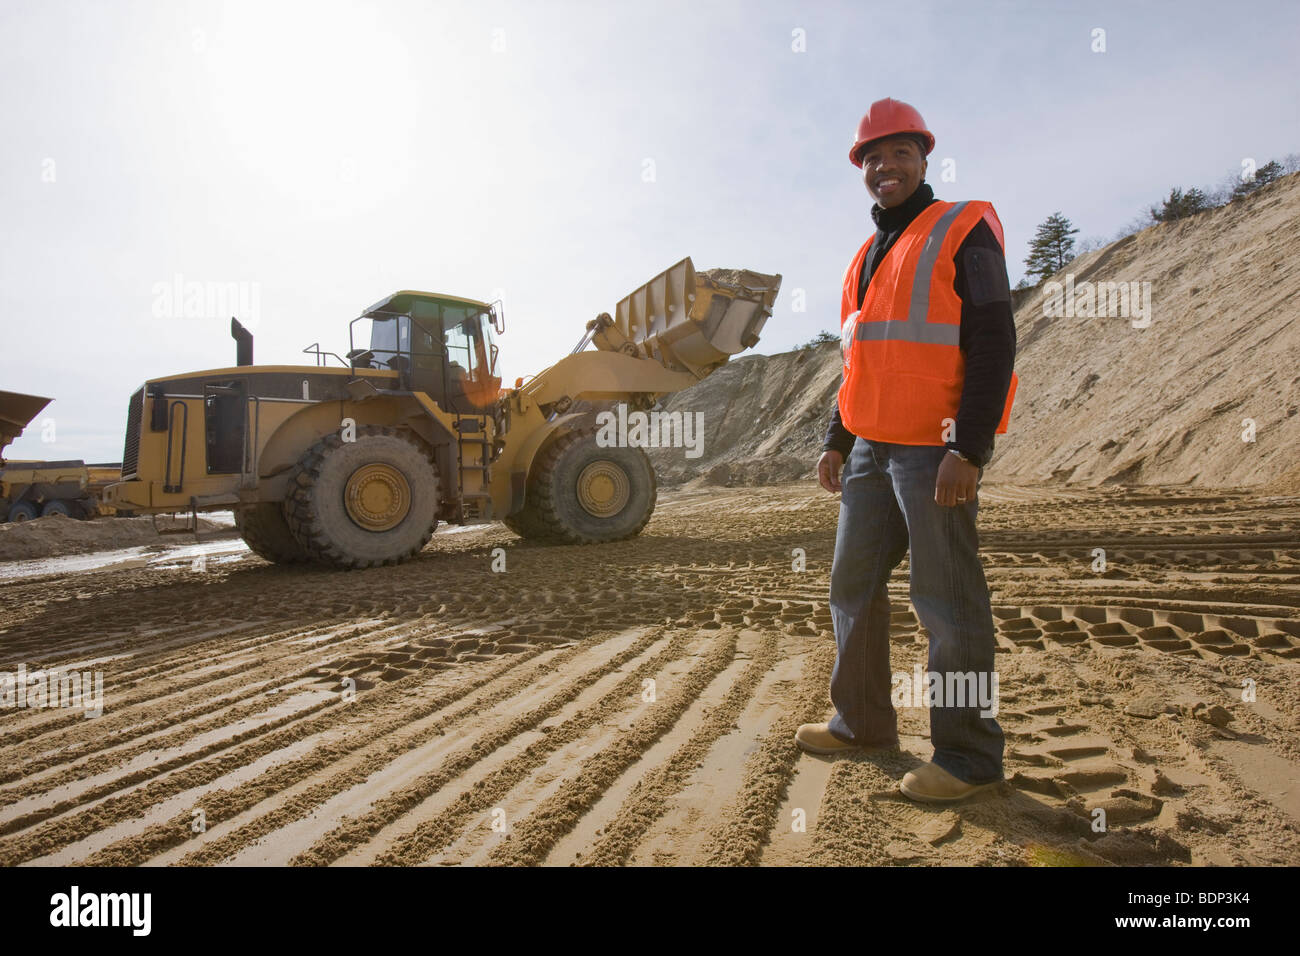 engineer at a construction site with a front end loader in the